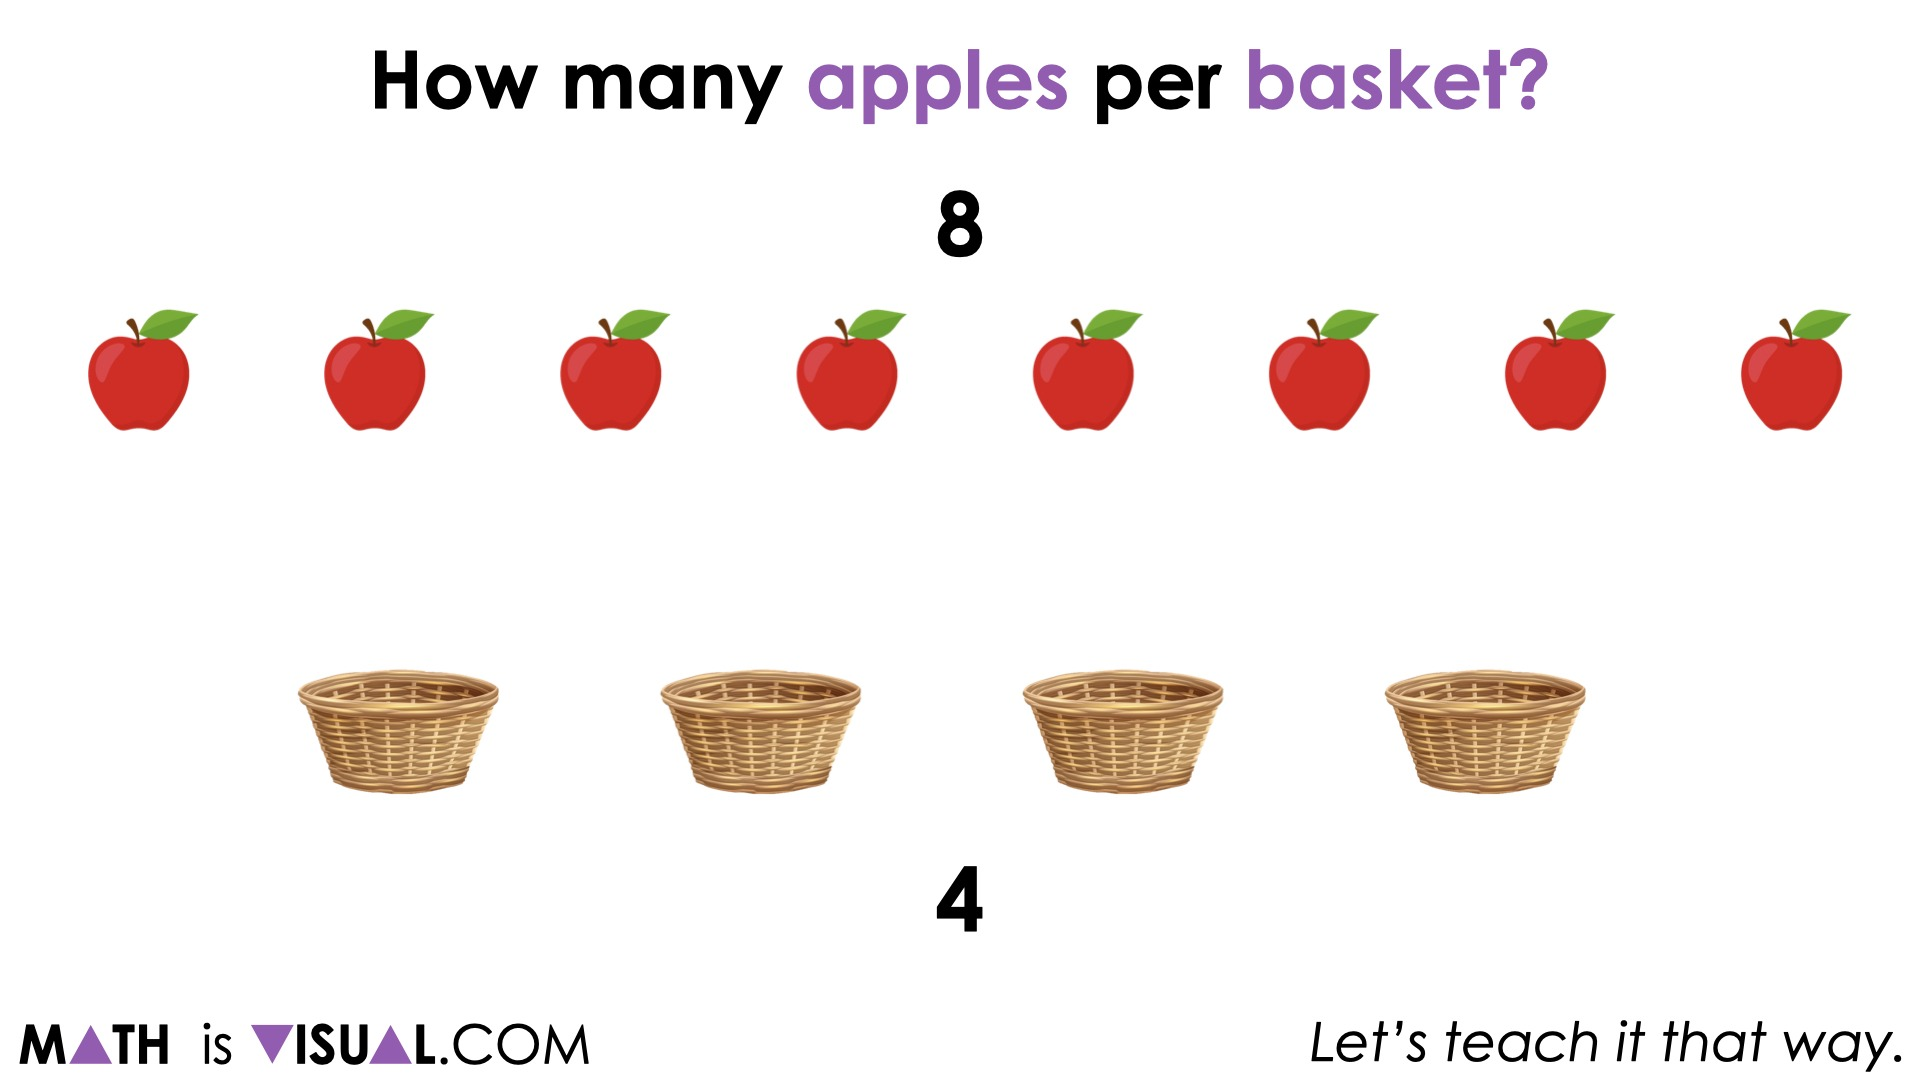 Planting Flowers [Day 2] - 02 - Dividing Ratios to Reveal a Rate 8 apples to 4 baskets